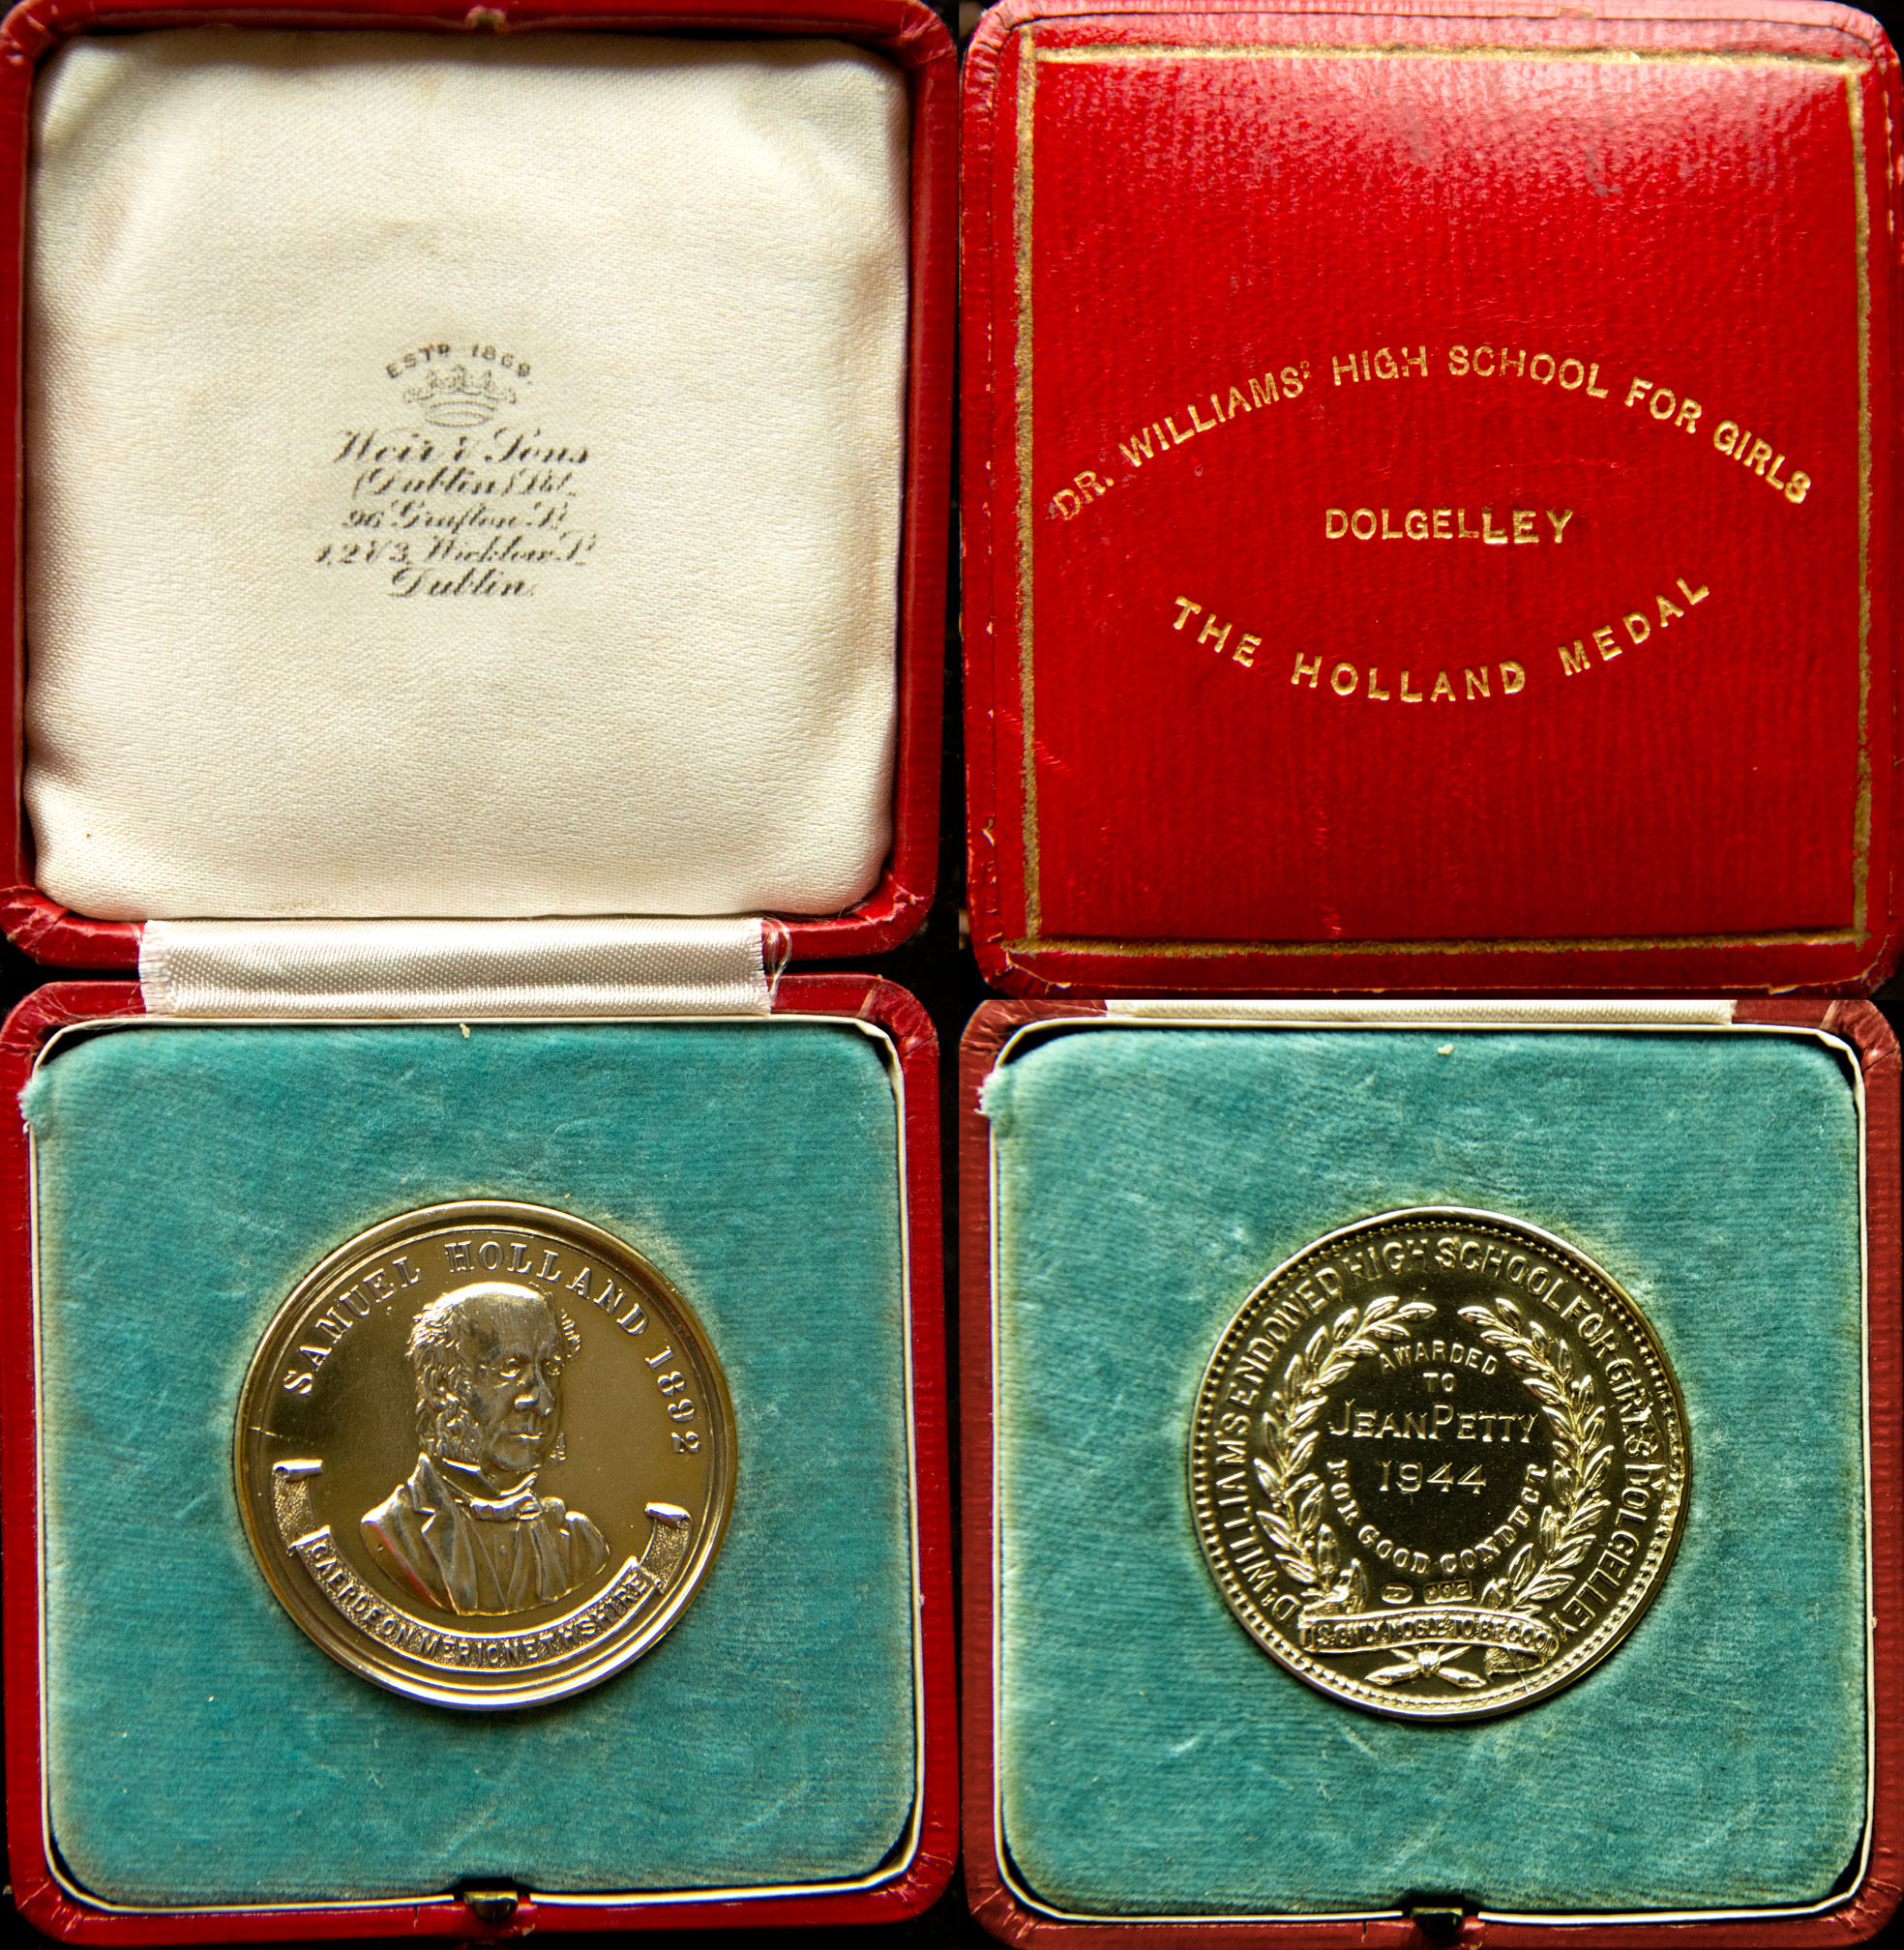 The Holland Medal, 1944